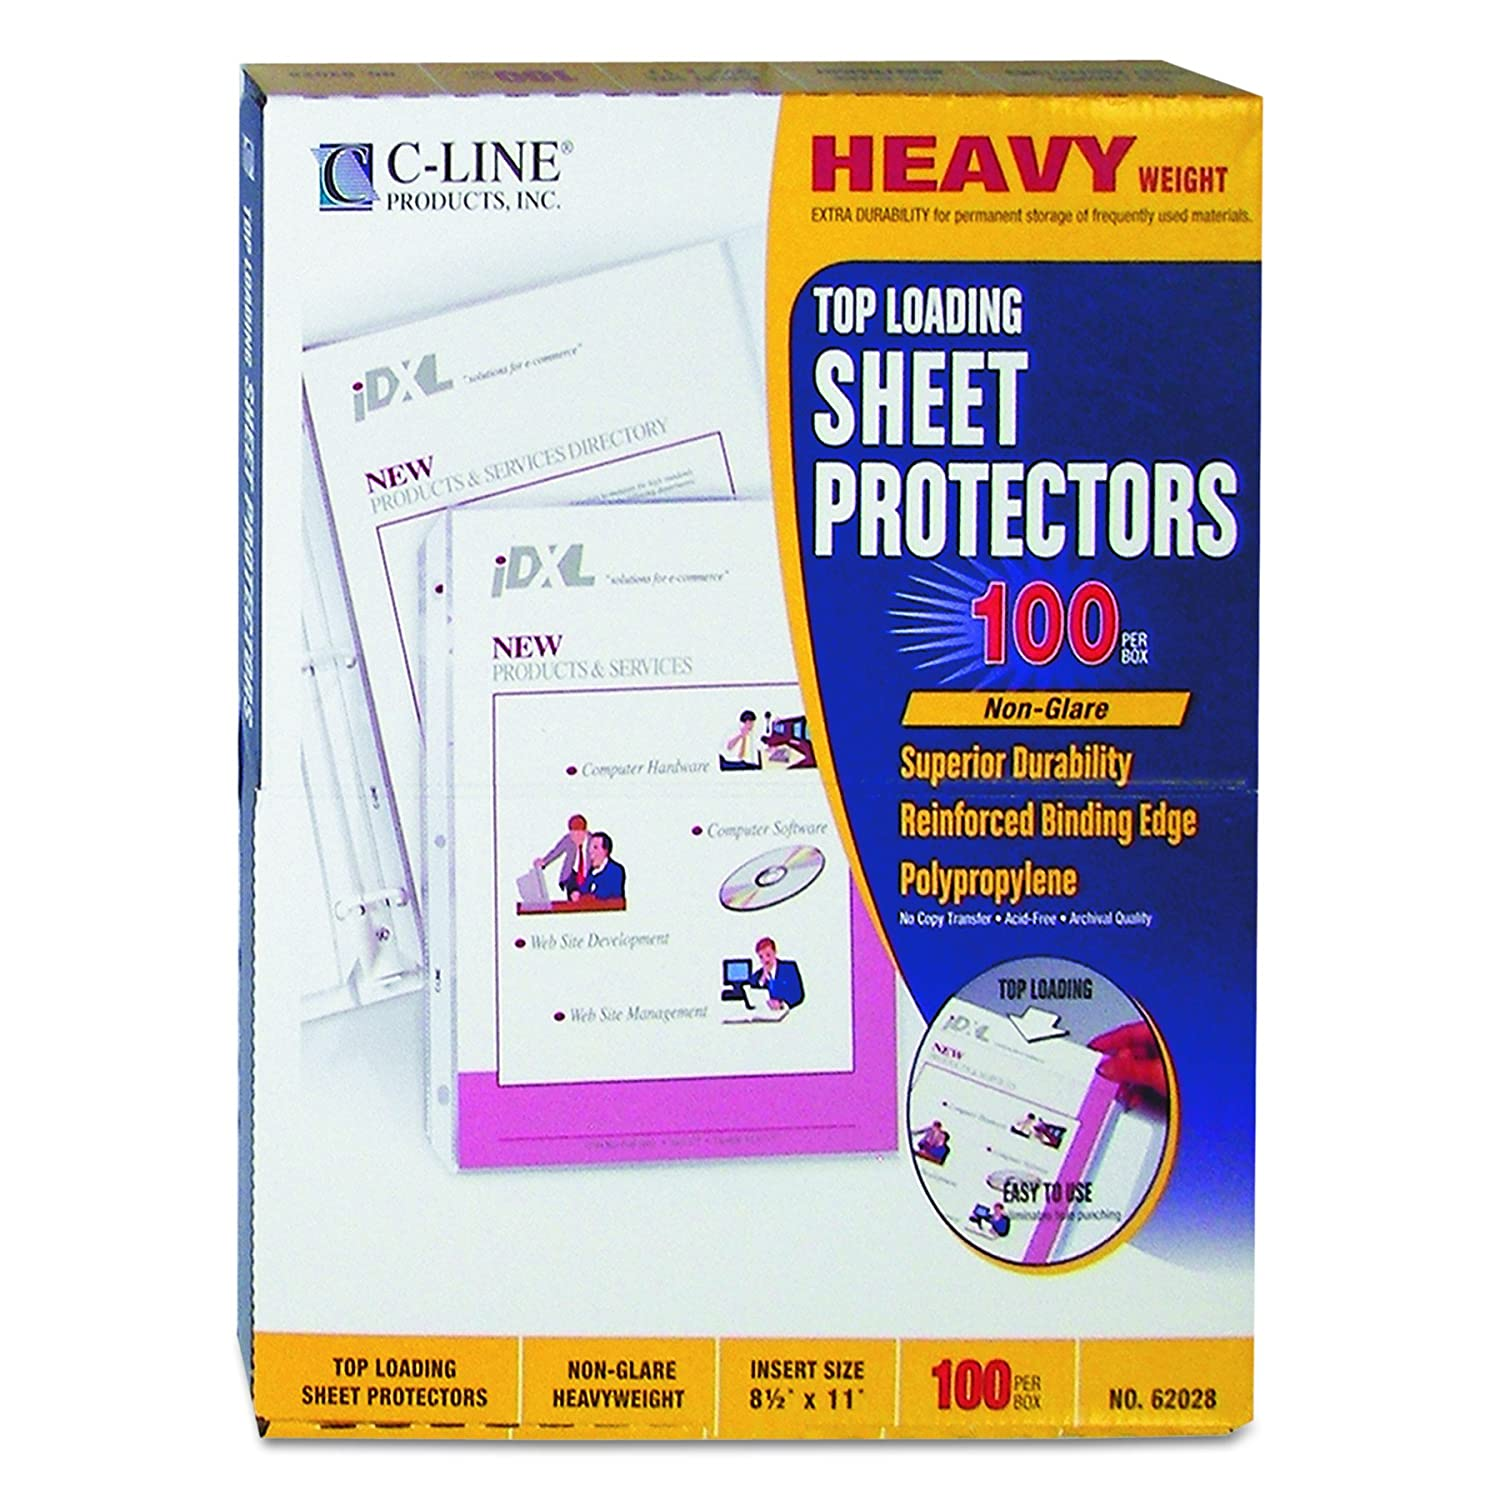 C-Line Heavyweight Polypropylene Sheet Protector, clear, 11 x 8 1/2, 100/BX - For Letter 8.5 x 11 Sheet - Clear - Polypropylene - 100 / Box C-Line Products Inc. 62023